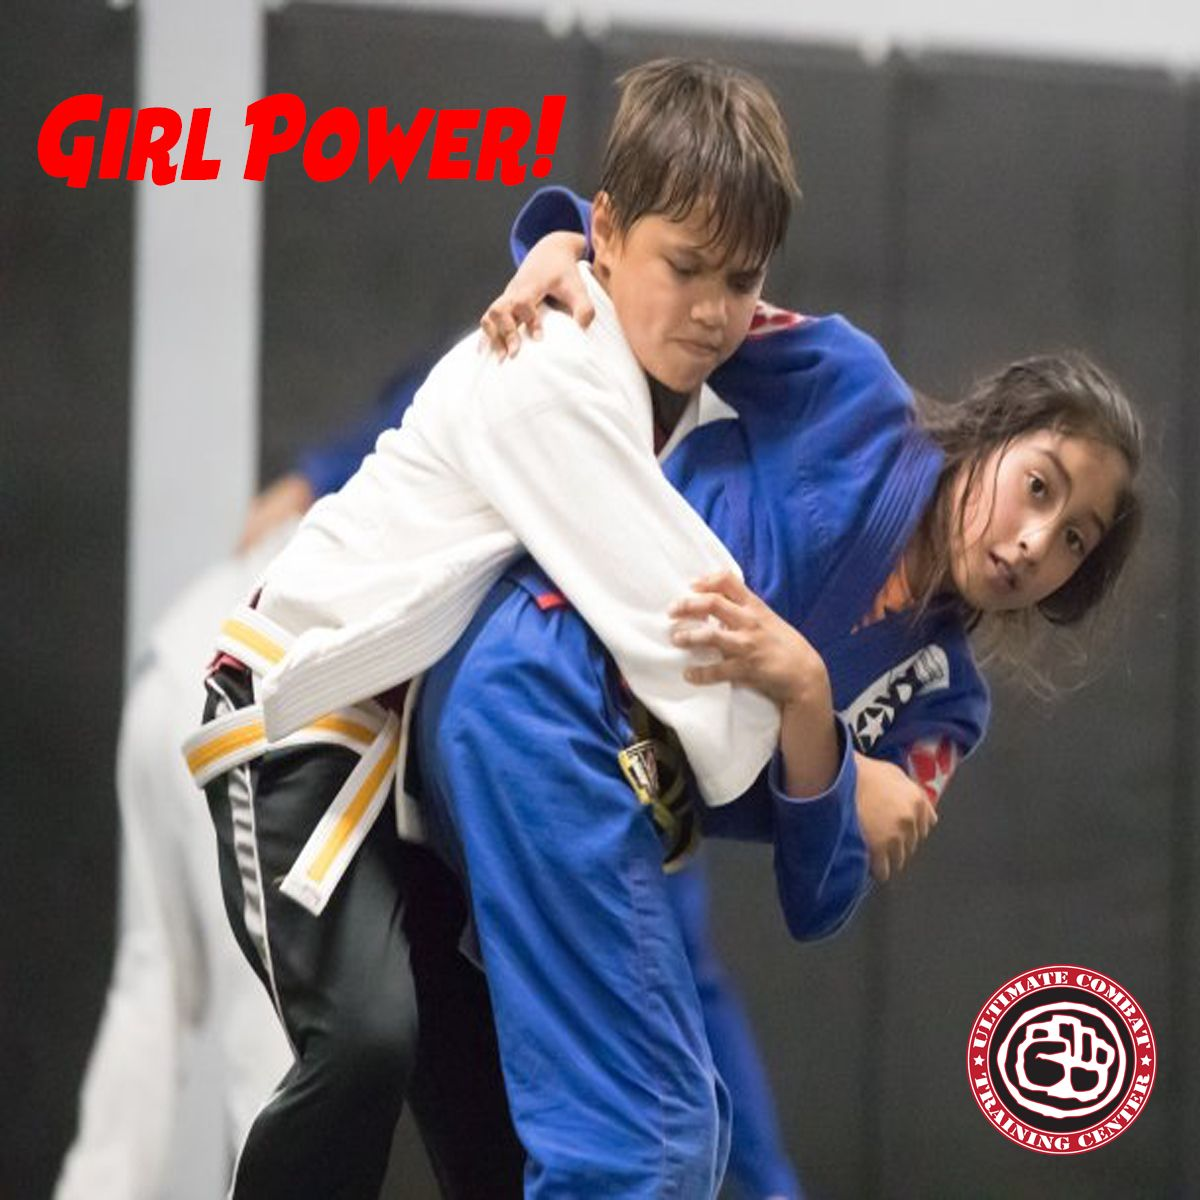 Brazilian Jiu Jitsu Classes In Salt Lake City Utah Gives Girl Power To Girls Www Ultimatecombat Com Martial Arts Kids Brazilian Jiu Jitsu Combat Training